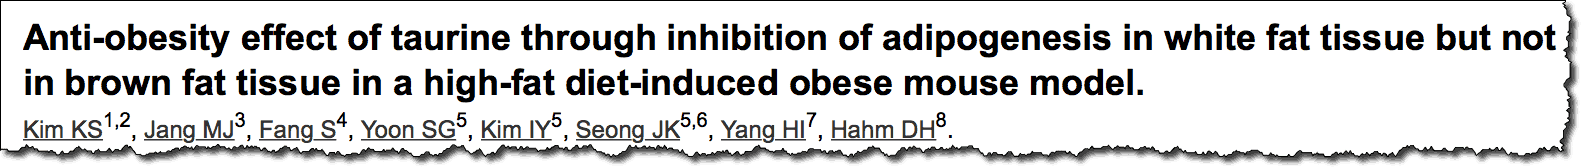 Anti-obesity effect of taurine